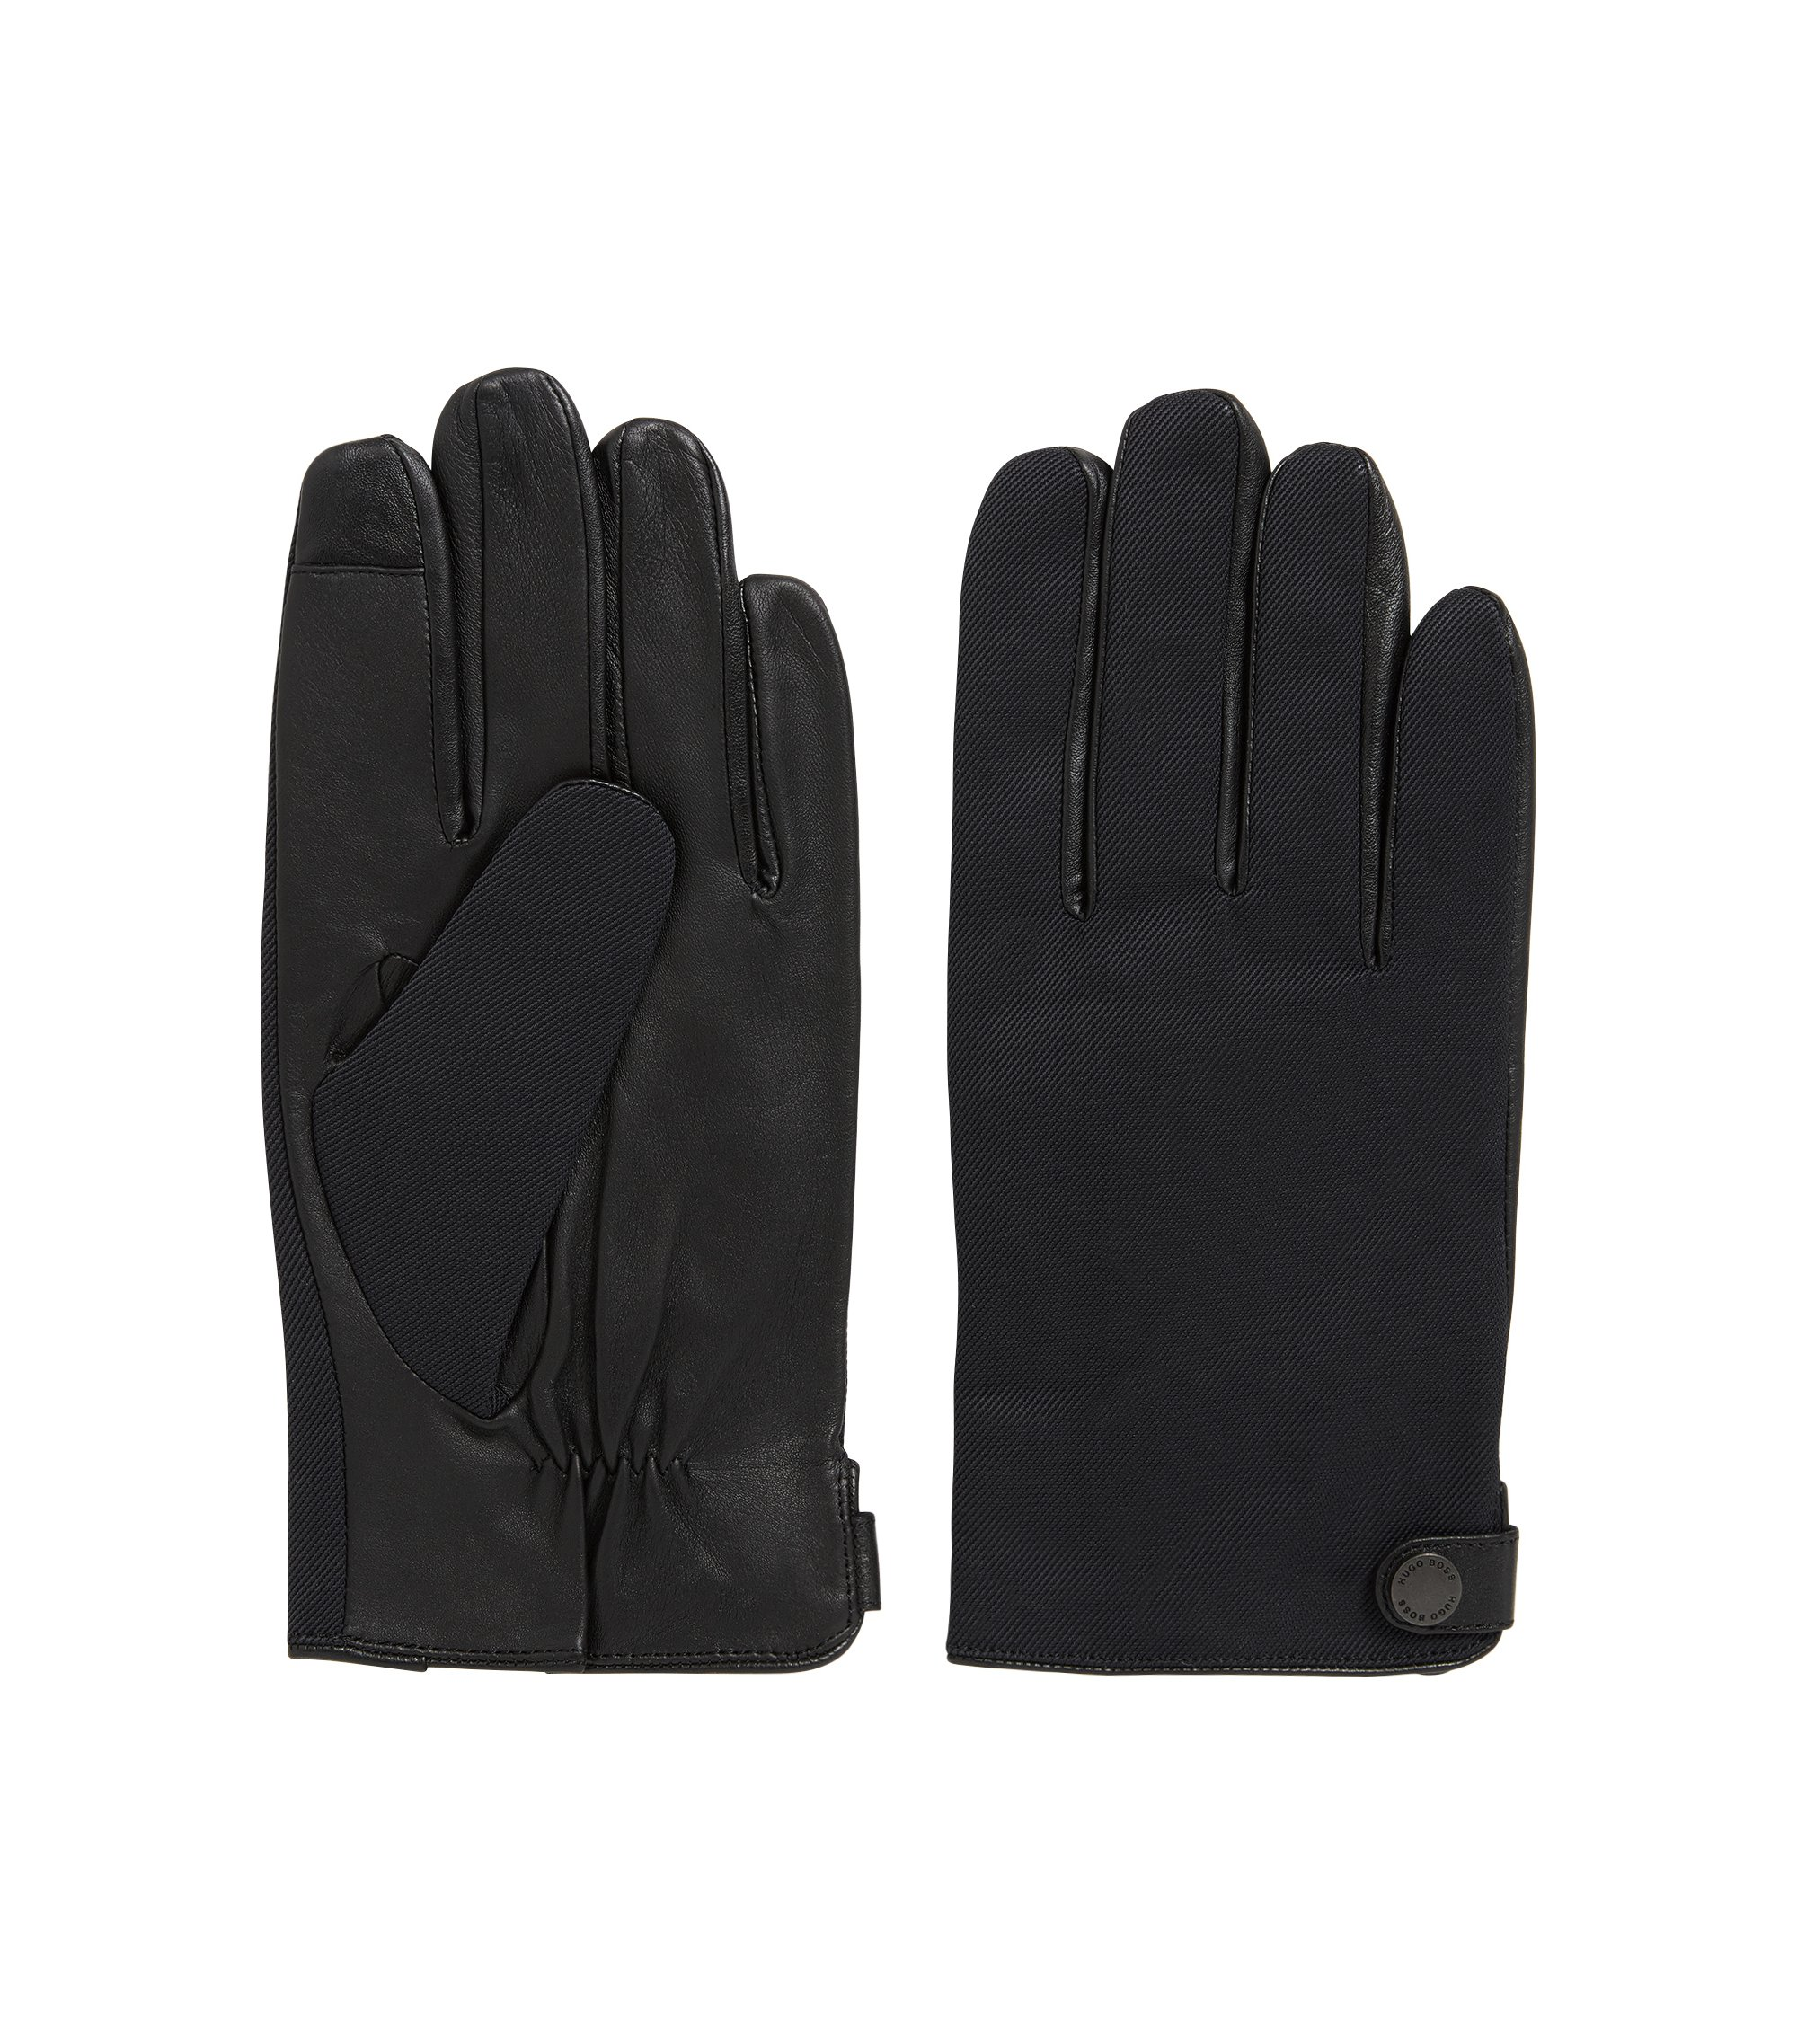 Nappa Leather & Wool Blend Tech Touch Glove | Helgan TT, Black